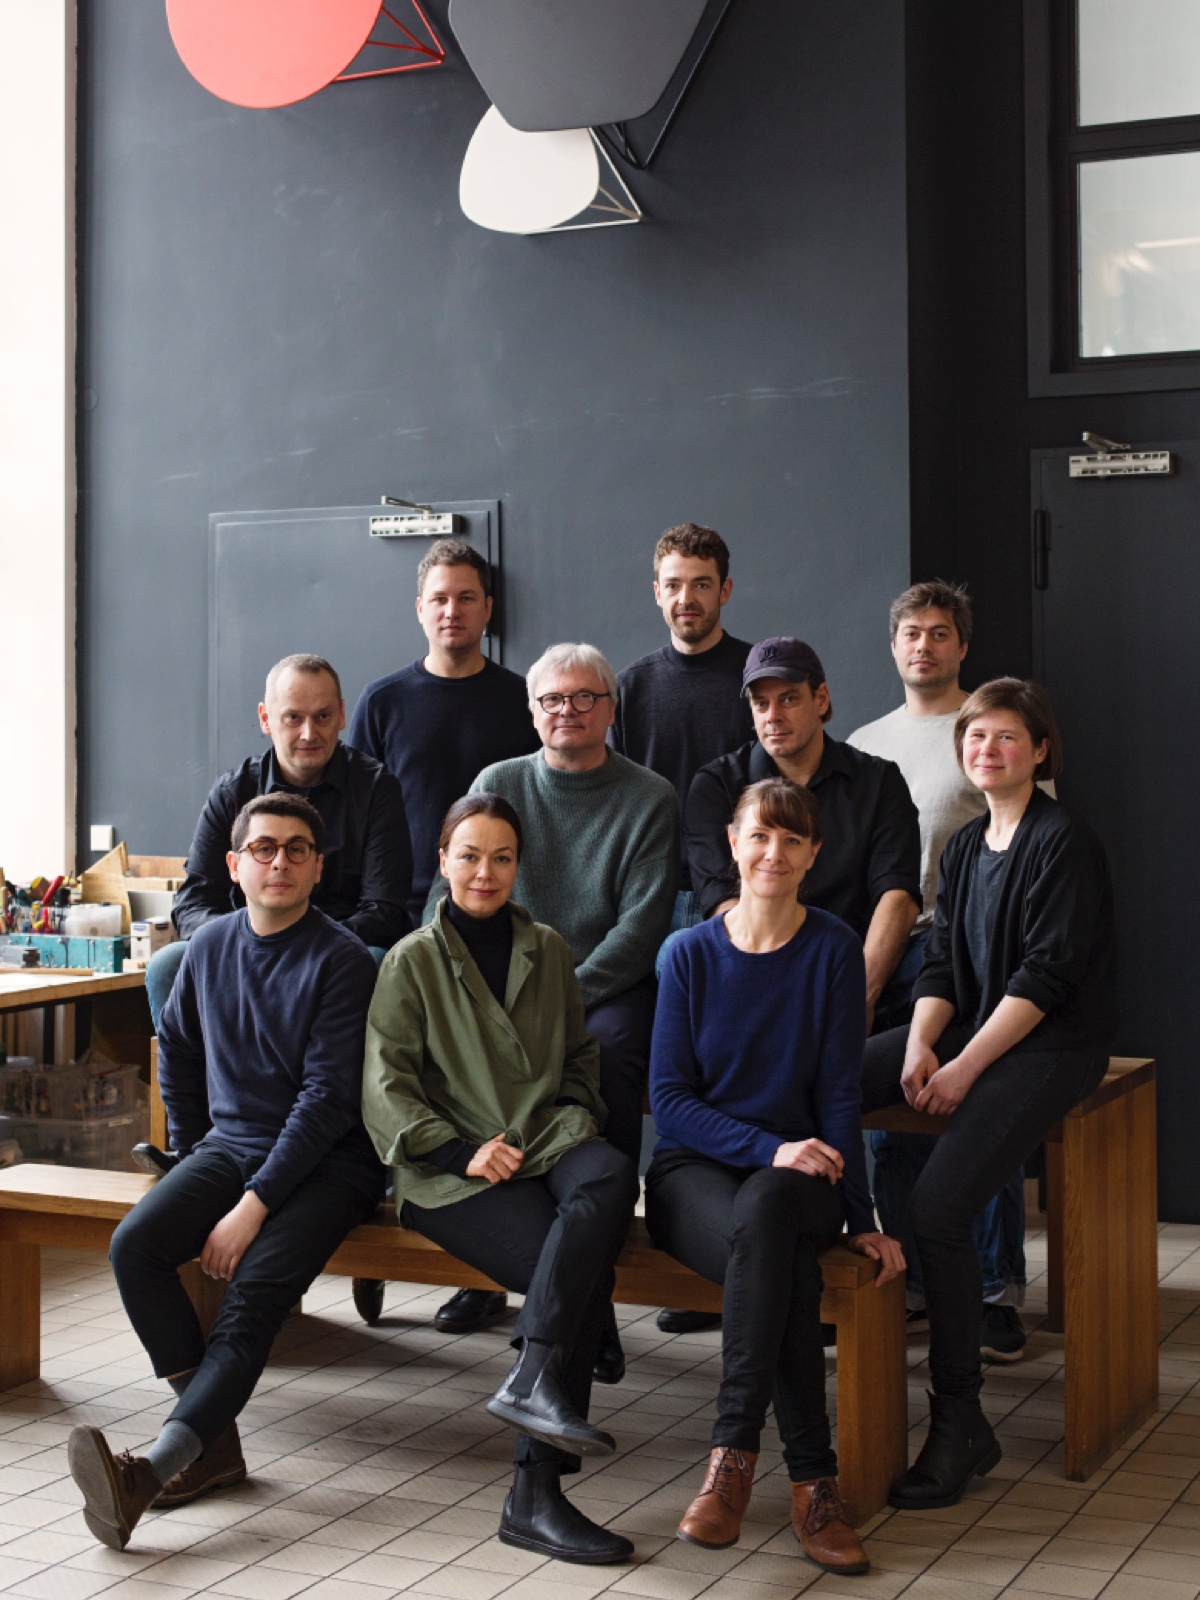 The men and women of Studio 7.5 sit grouped together on wooden benches in their workspace.